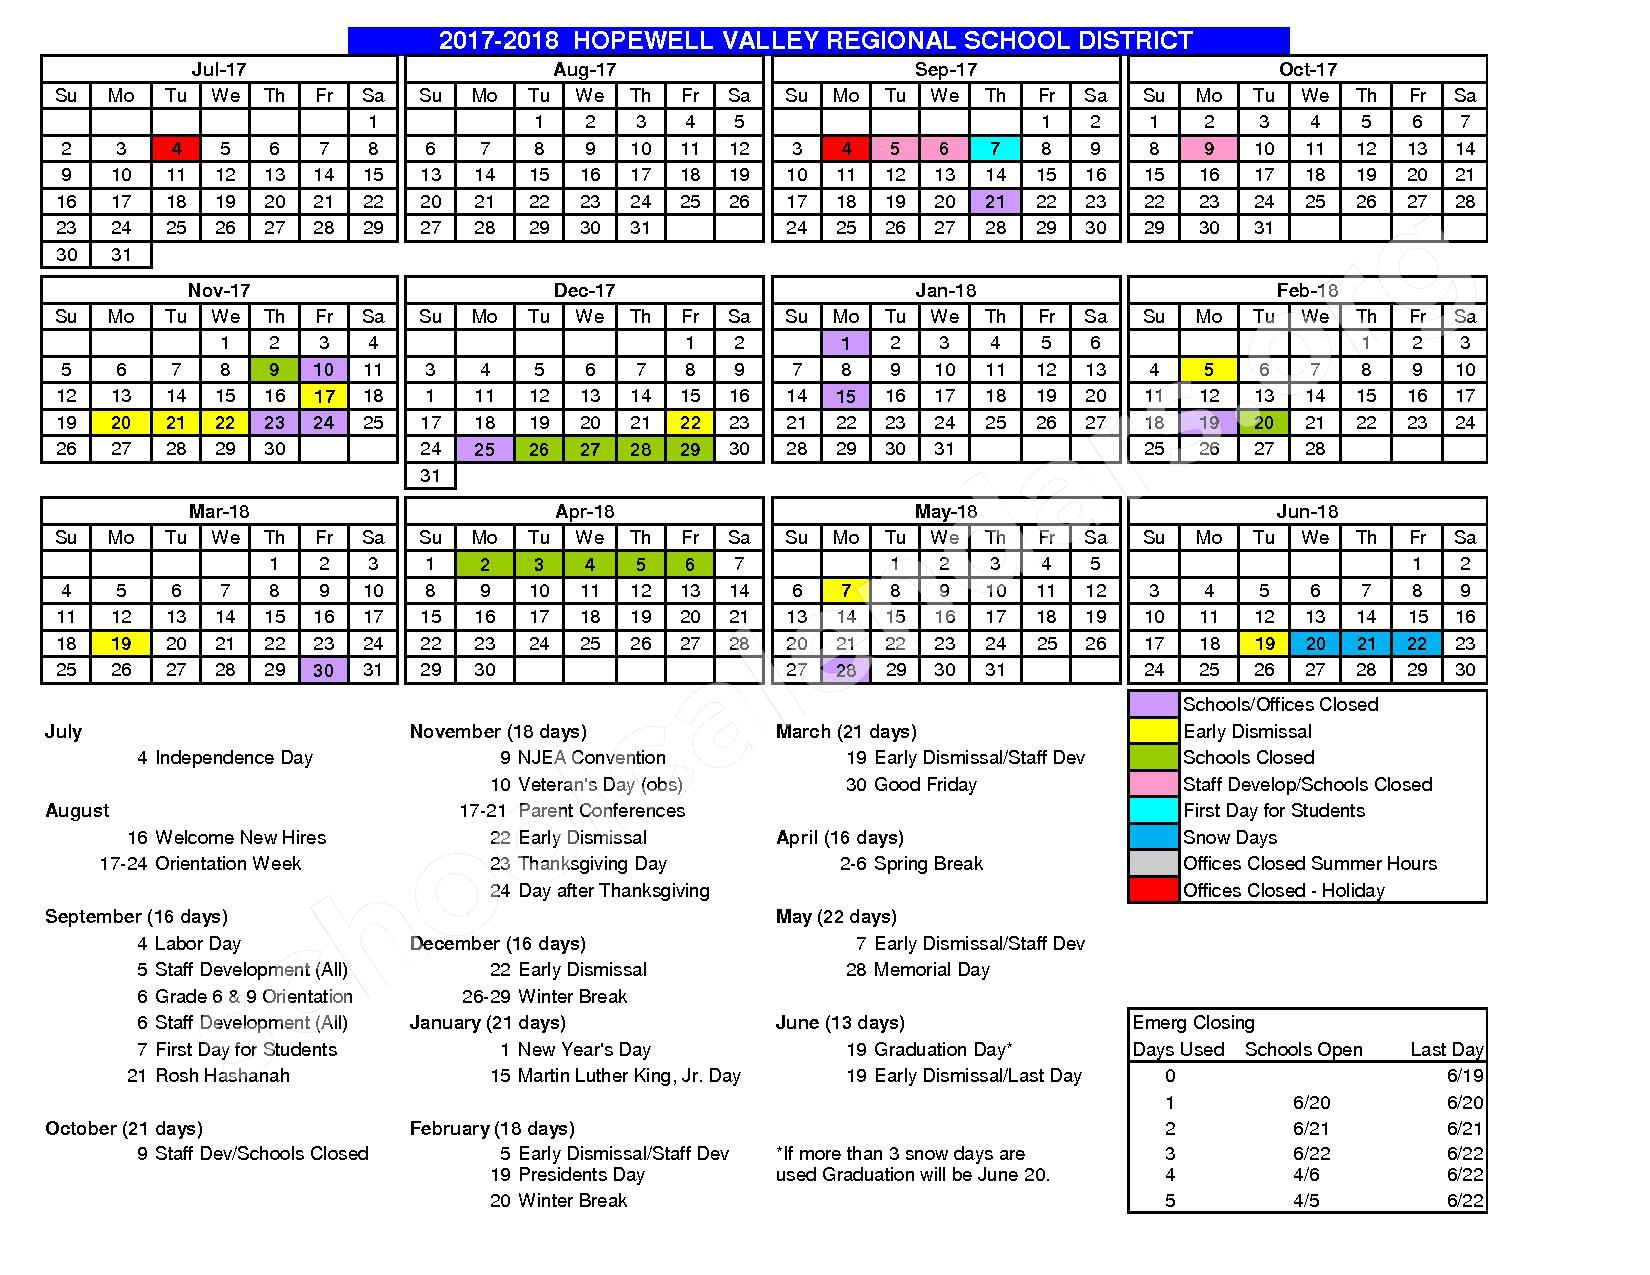 2016 - 2017 School Calendar – Hopewell Valley Regional School District – page 2